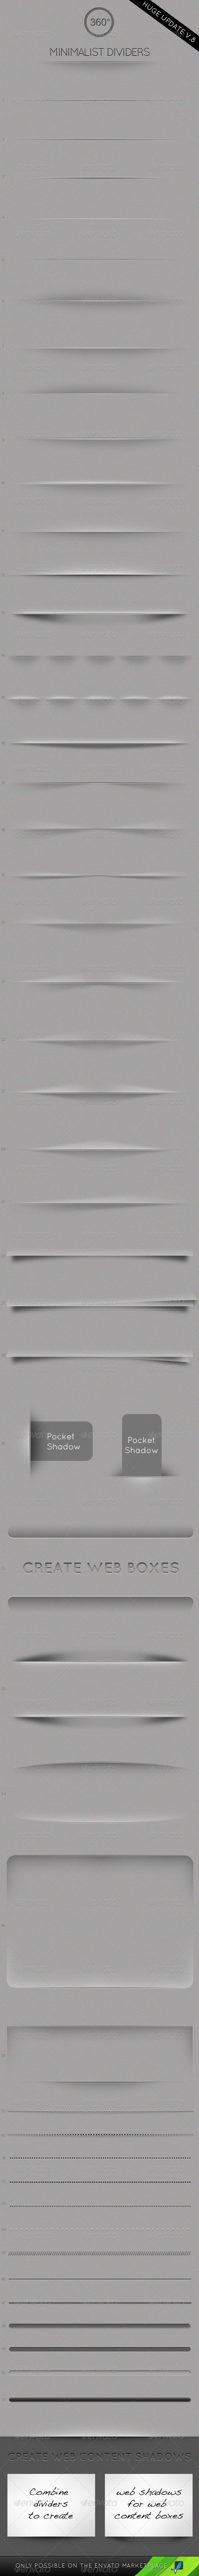 Web Elements - Minimalist Dividers - Resizable | GraphicRiver